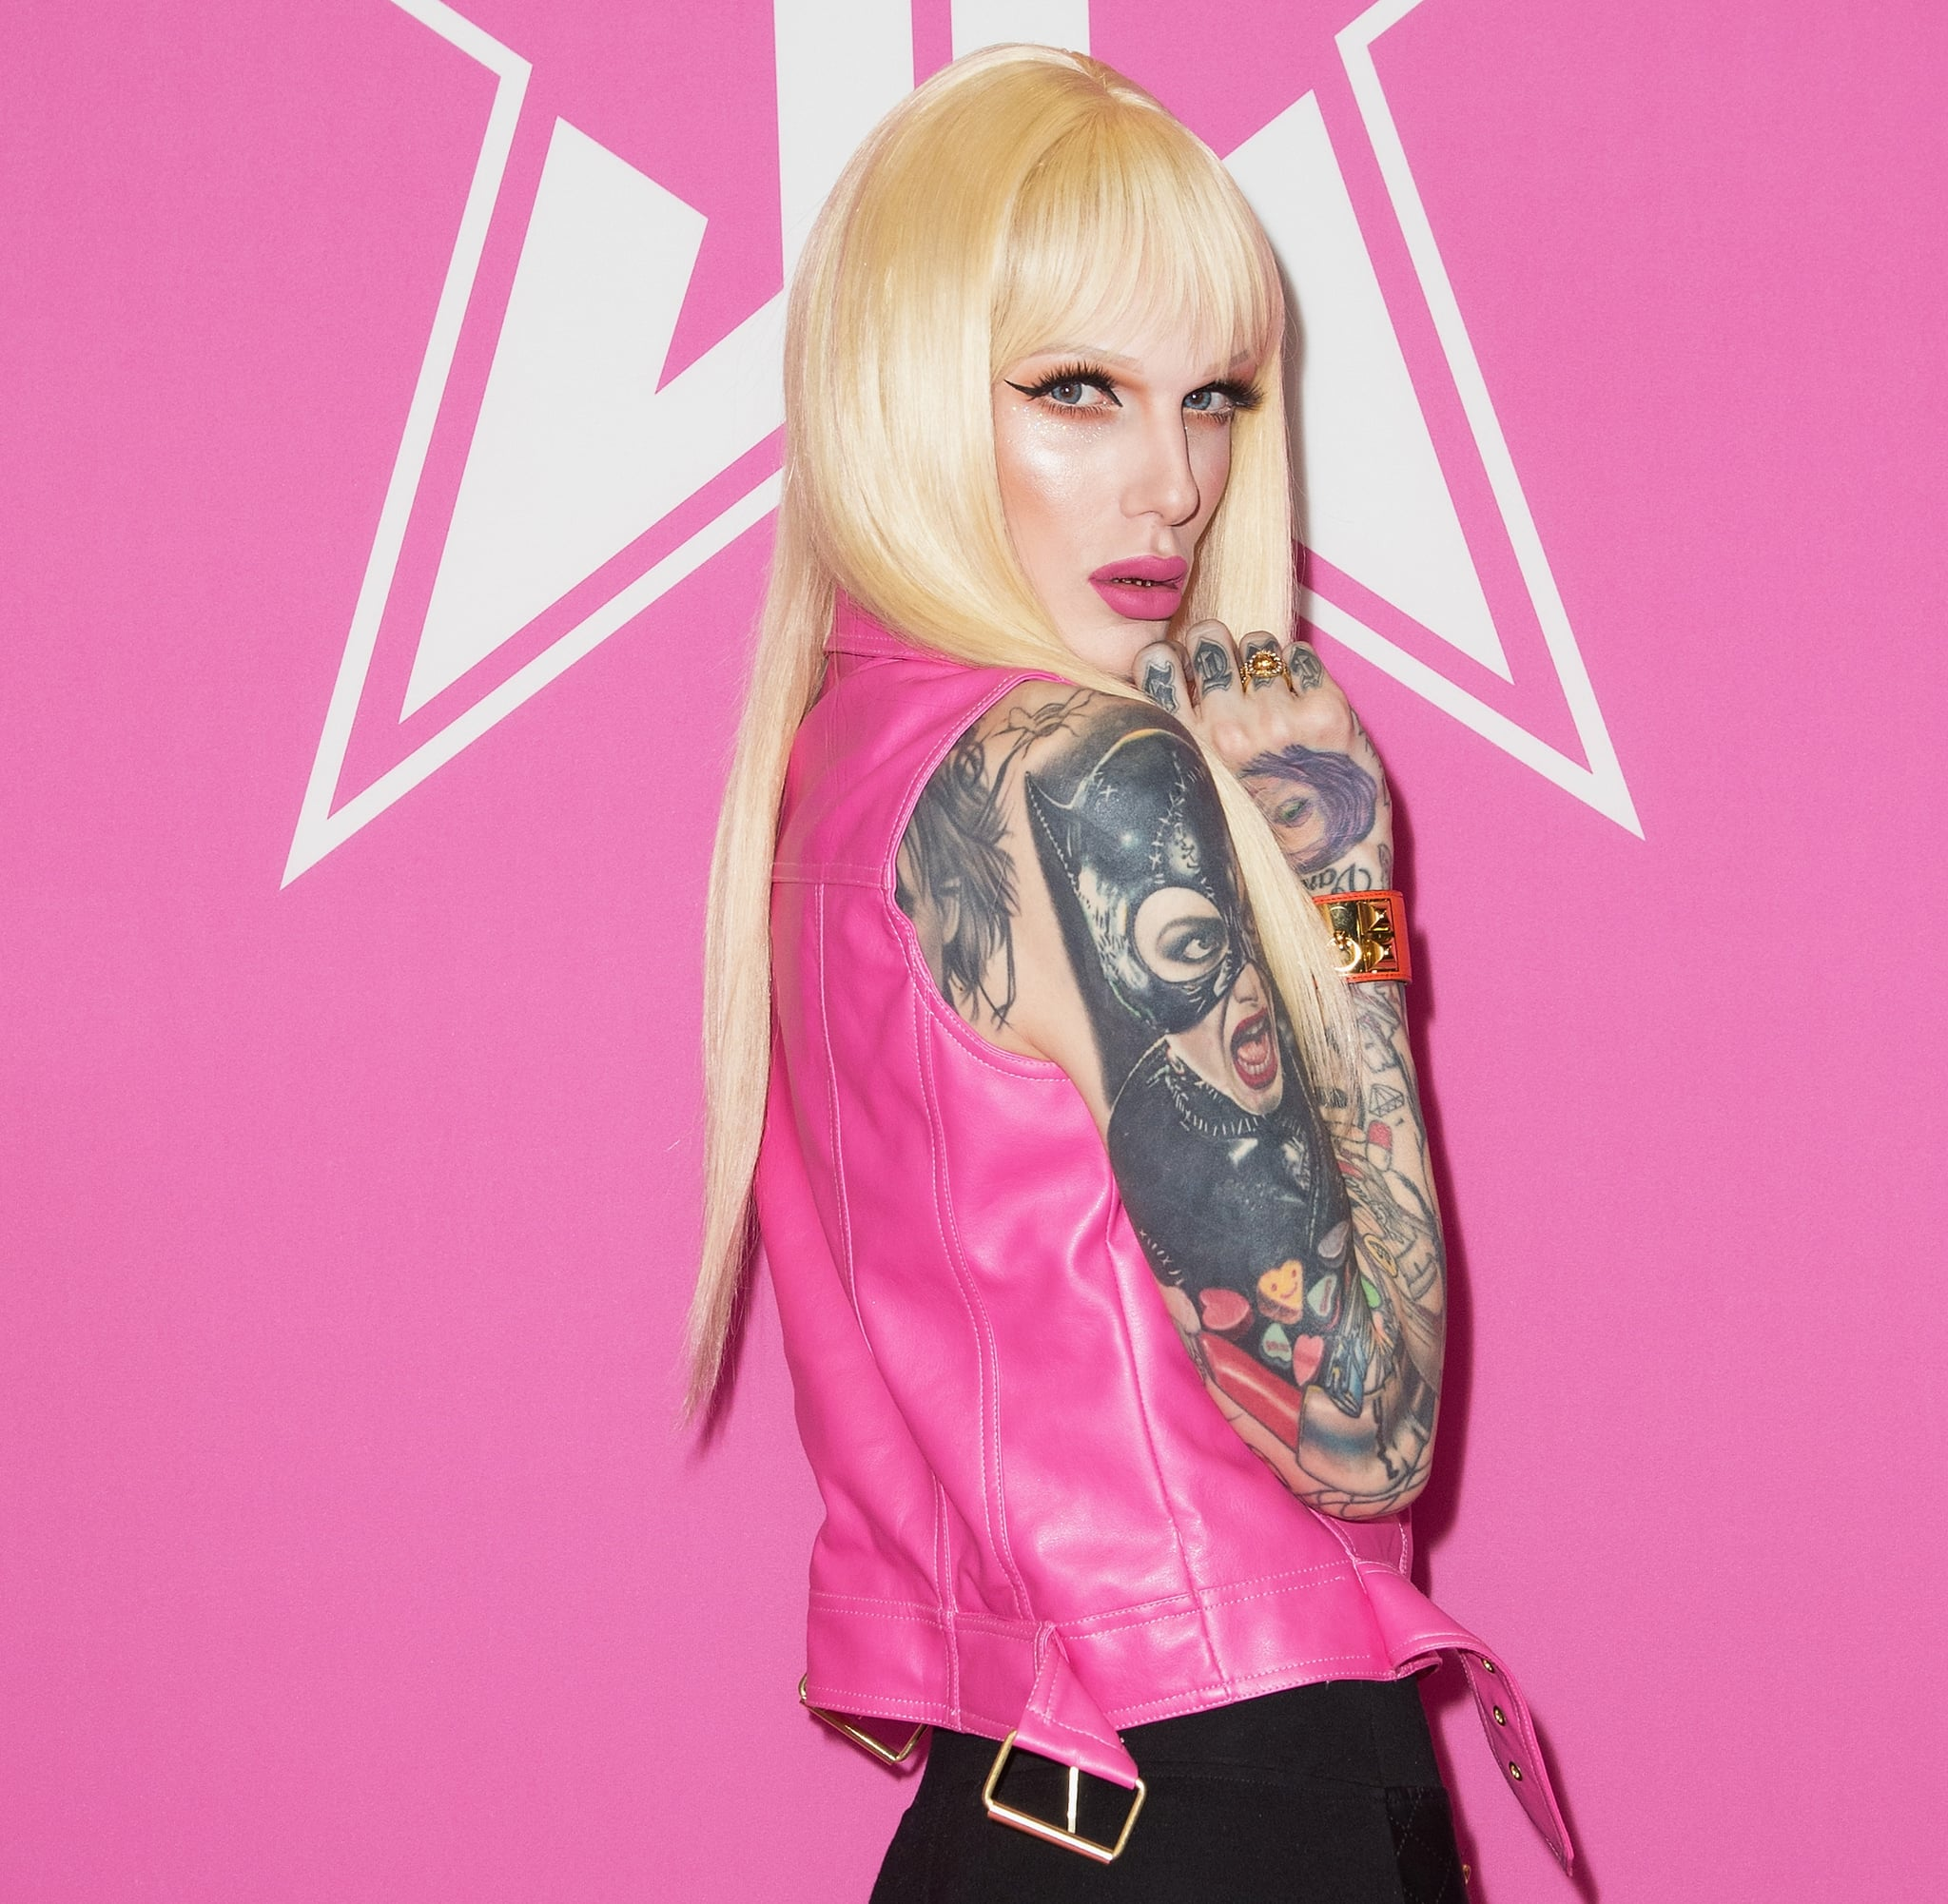 jeffree star - photo #23